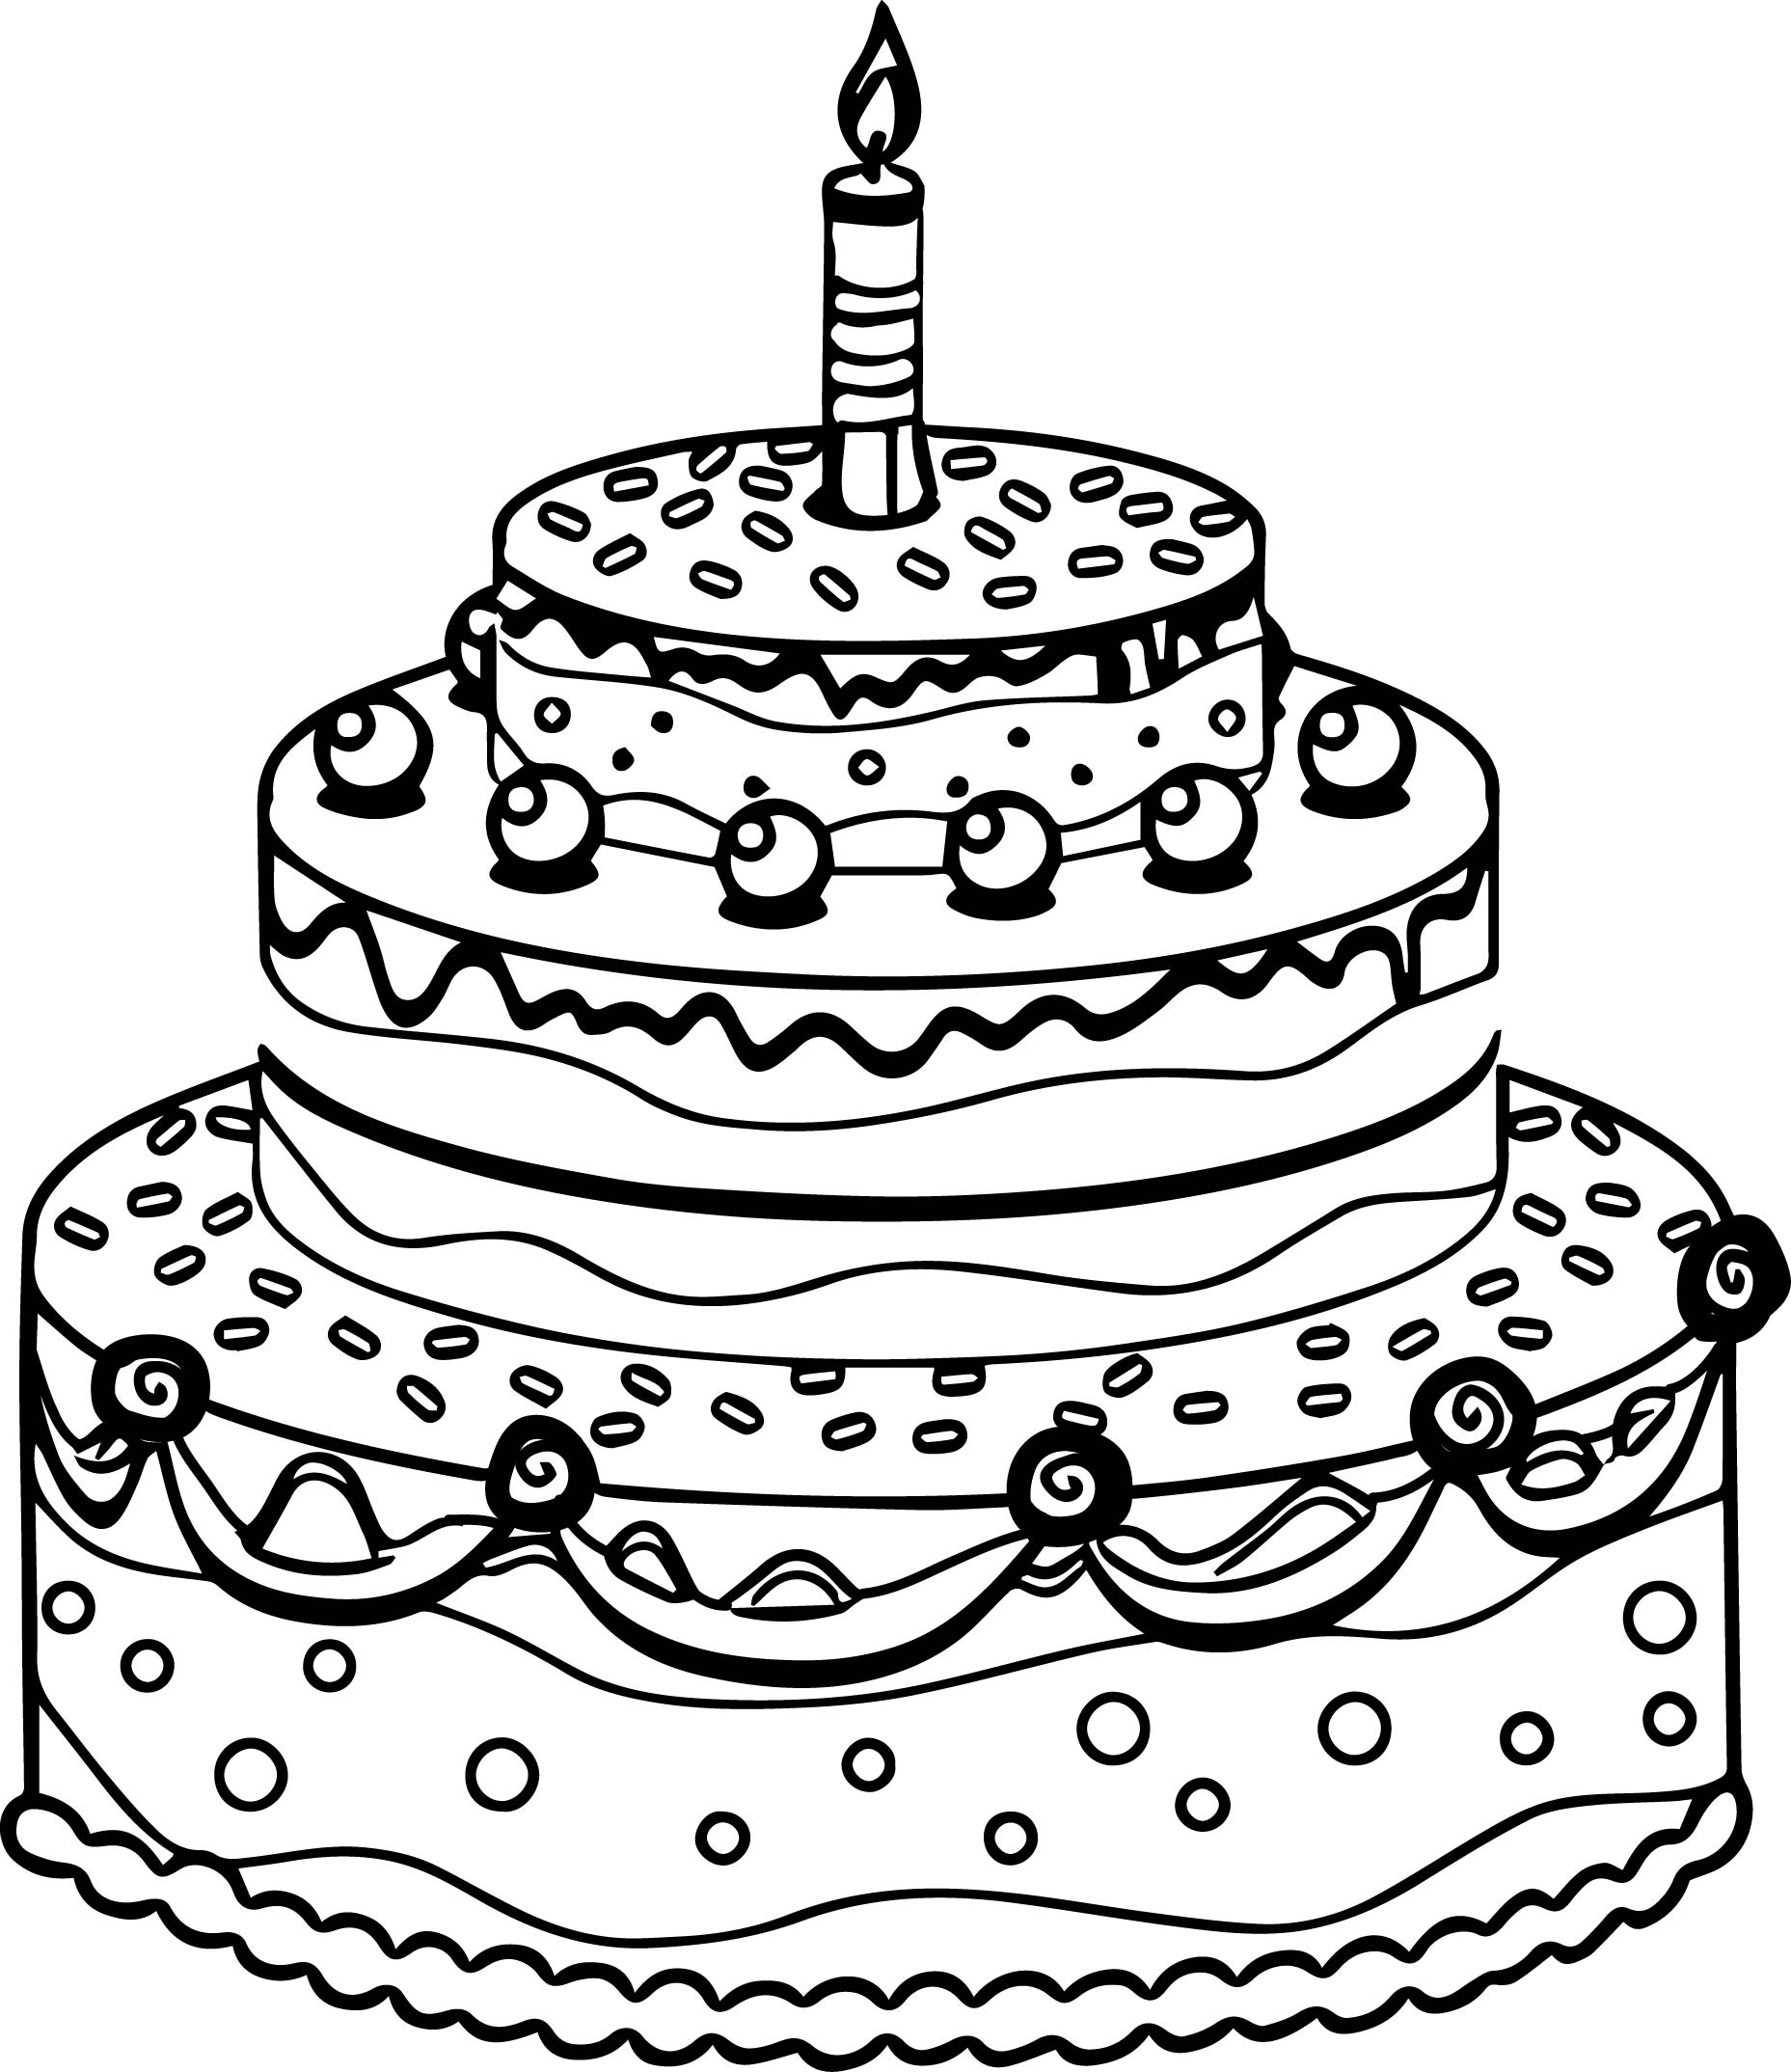 Birthday Cake Drawing At GetDrawings